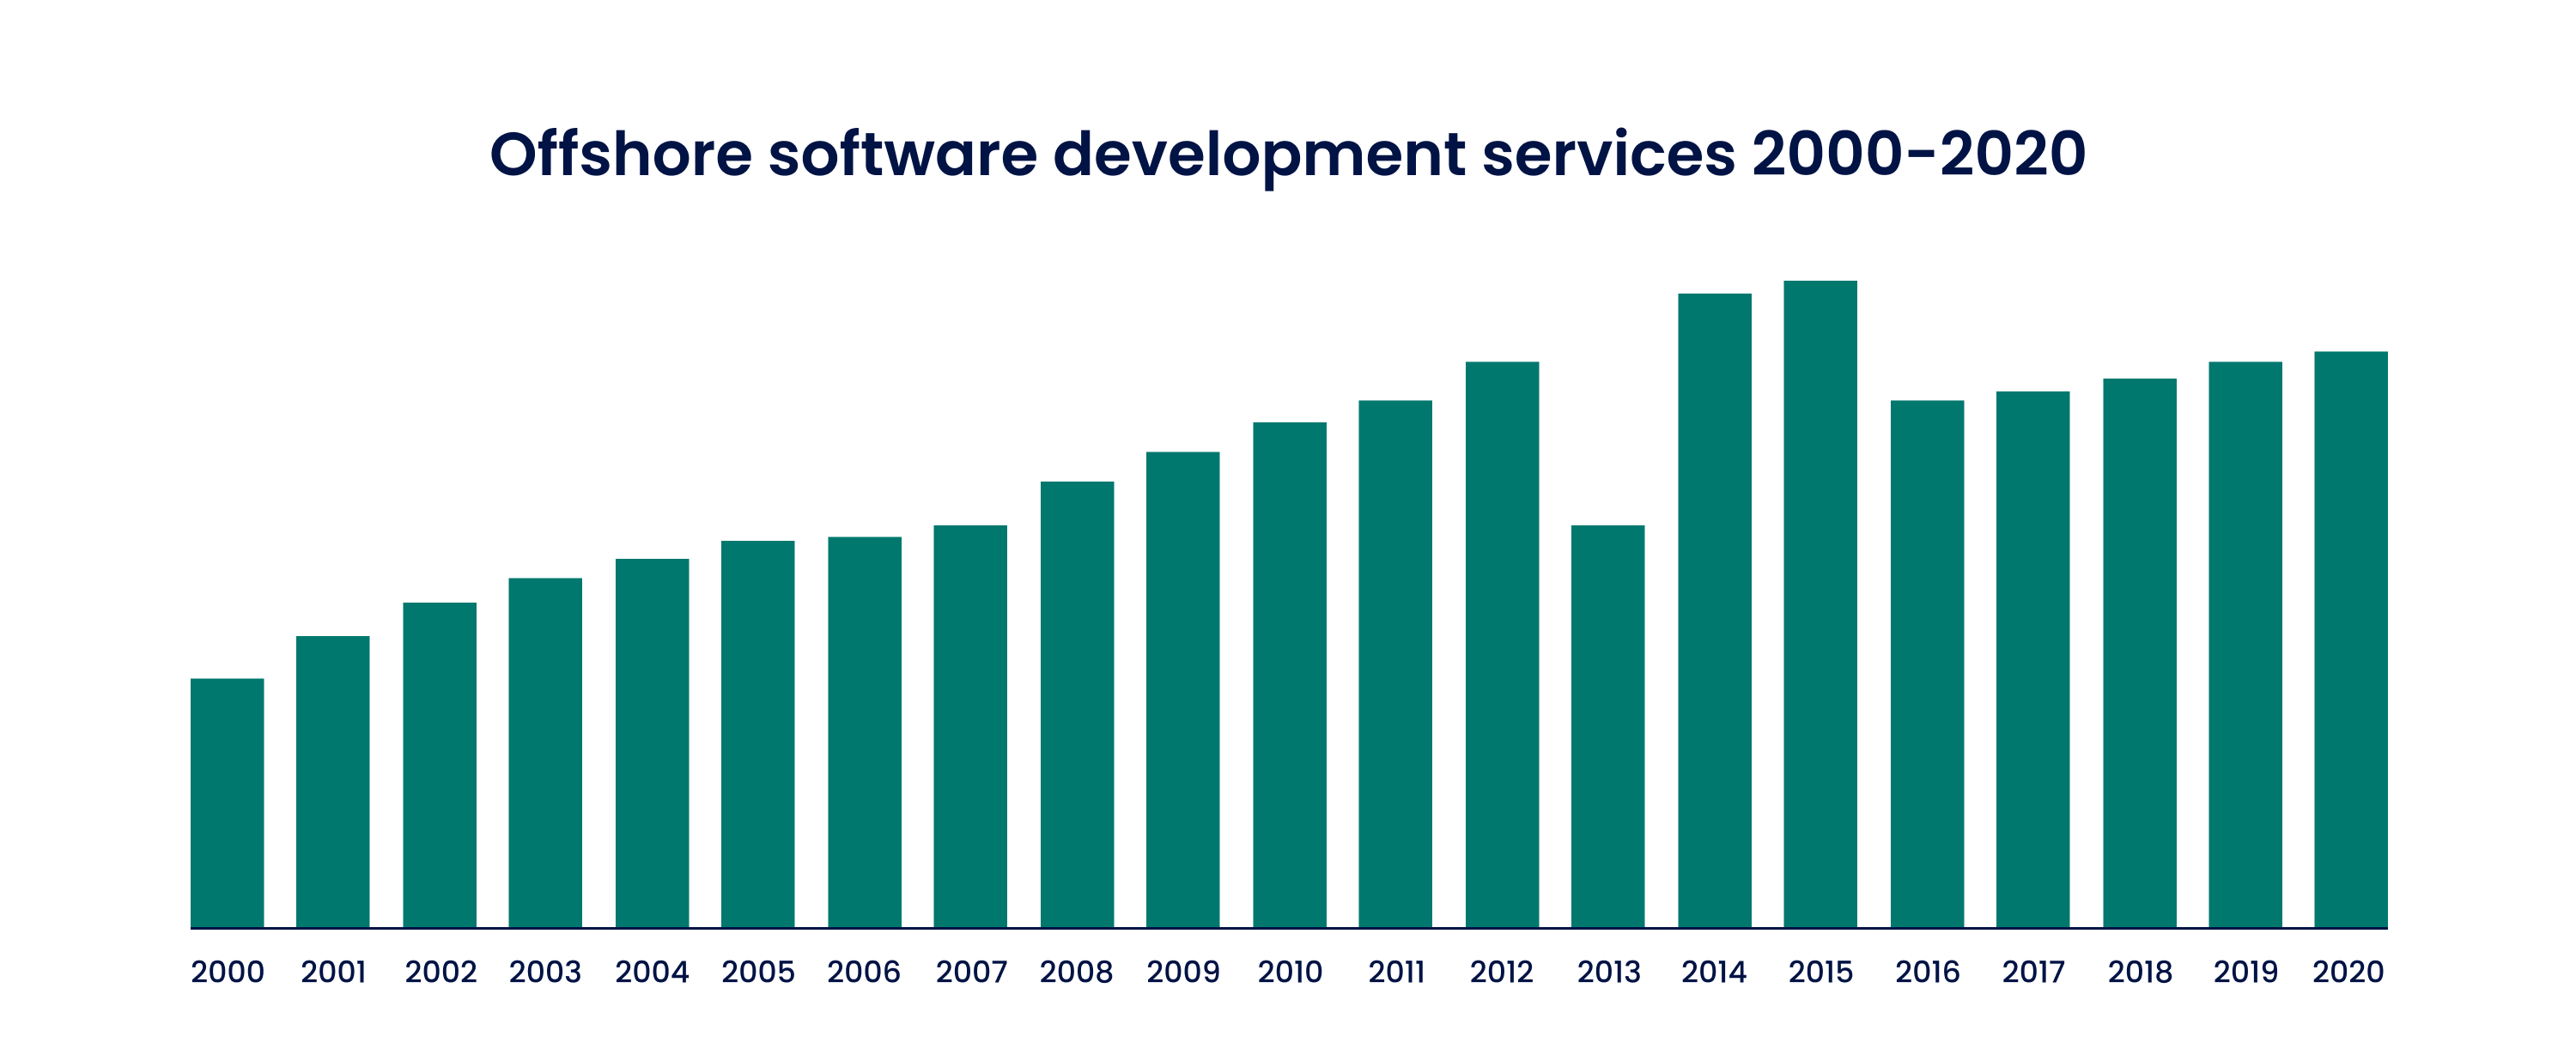 Offshore software development services 2000-2020